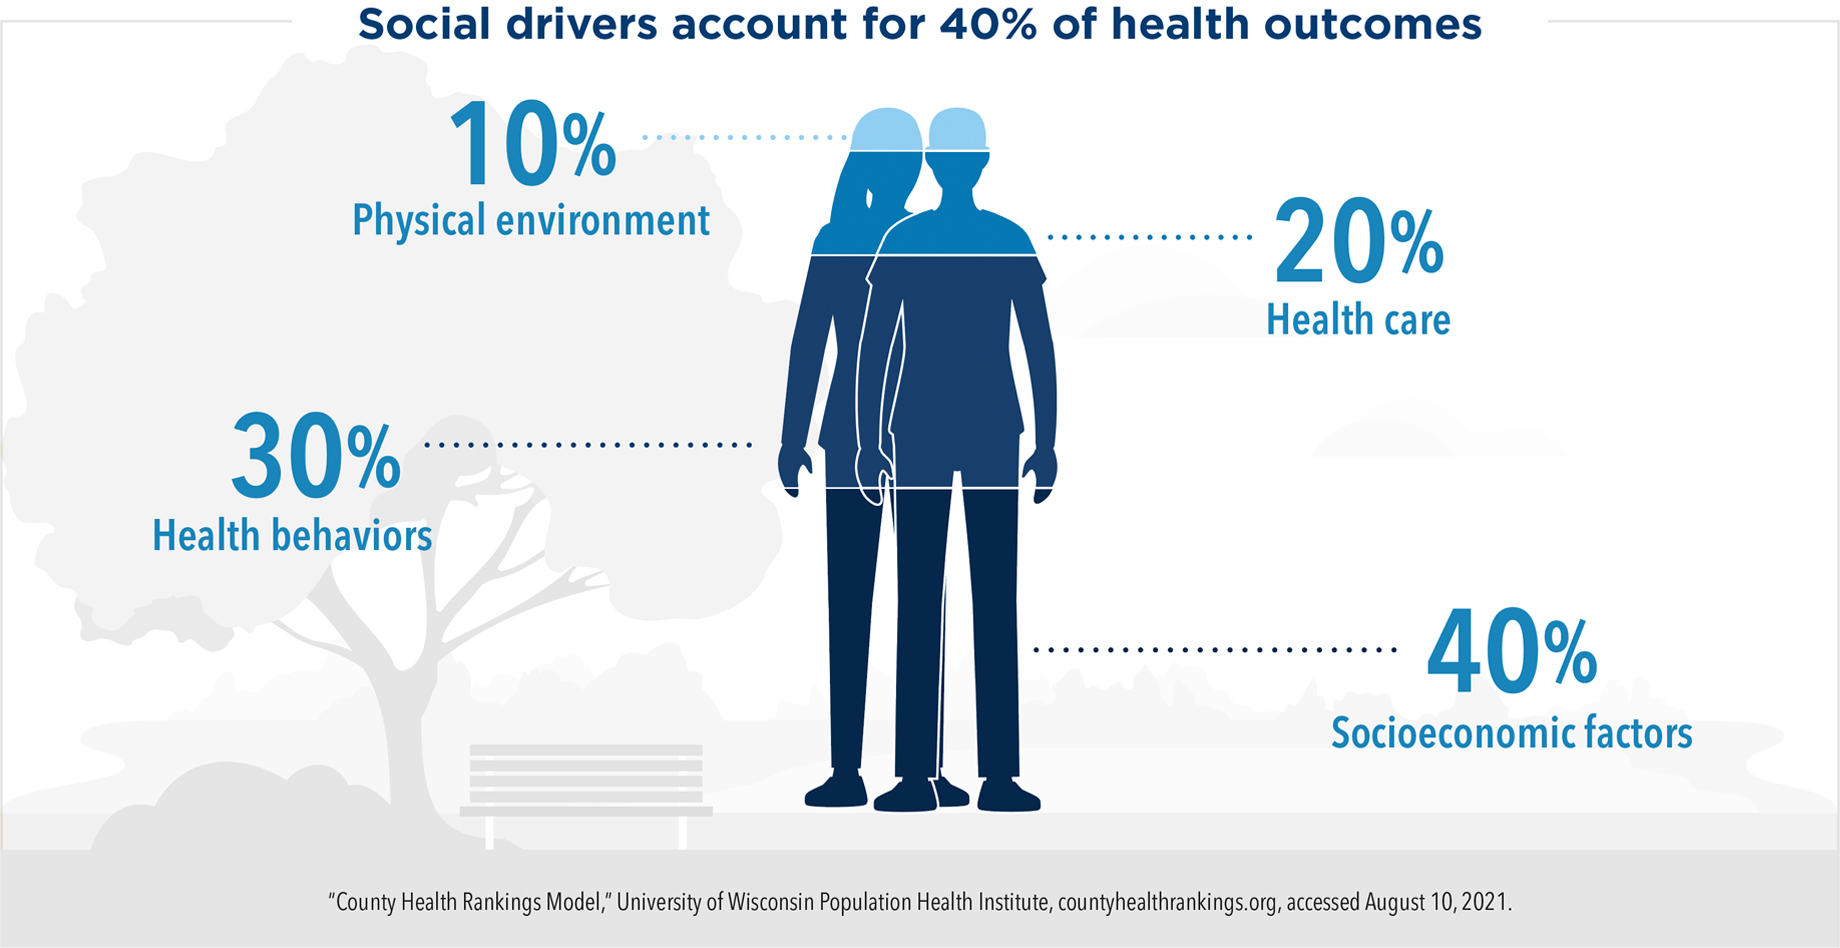 Social drivers account for 40% of health outcomes: 10% physical environment, 20% health care, 30% behaviors, 40% socioeconomic factors